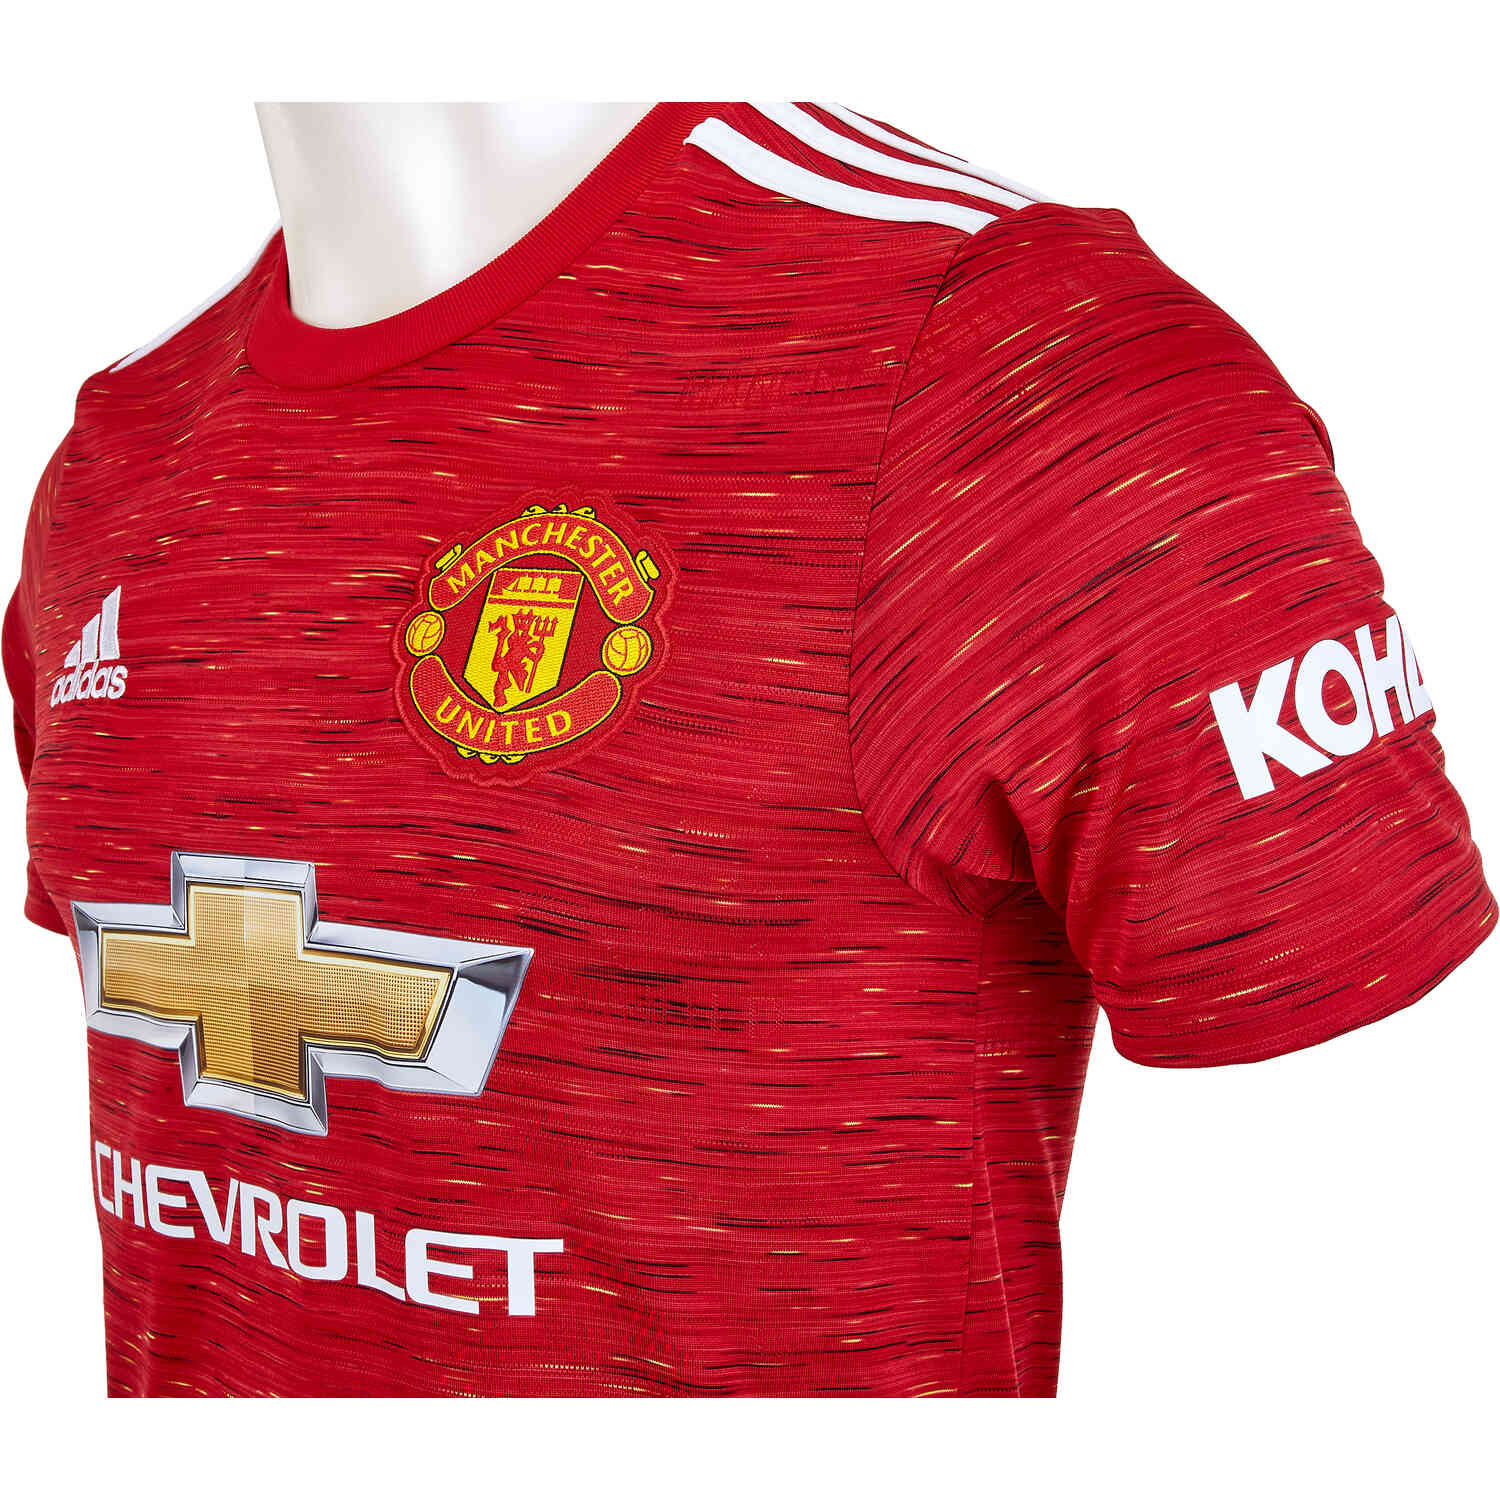 2020/21 adidas Manchester United Home Jersey - SoccerPro